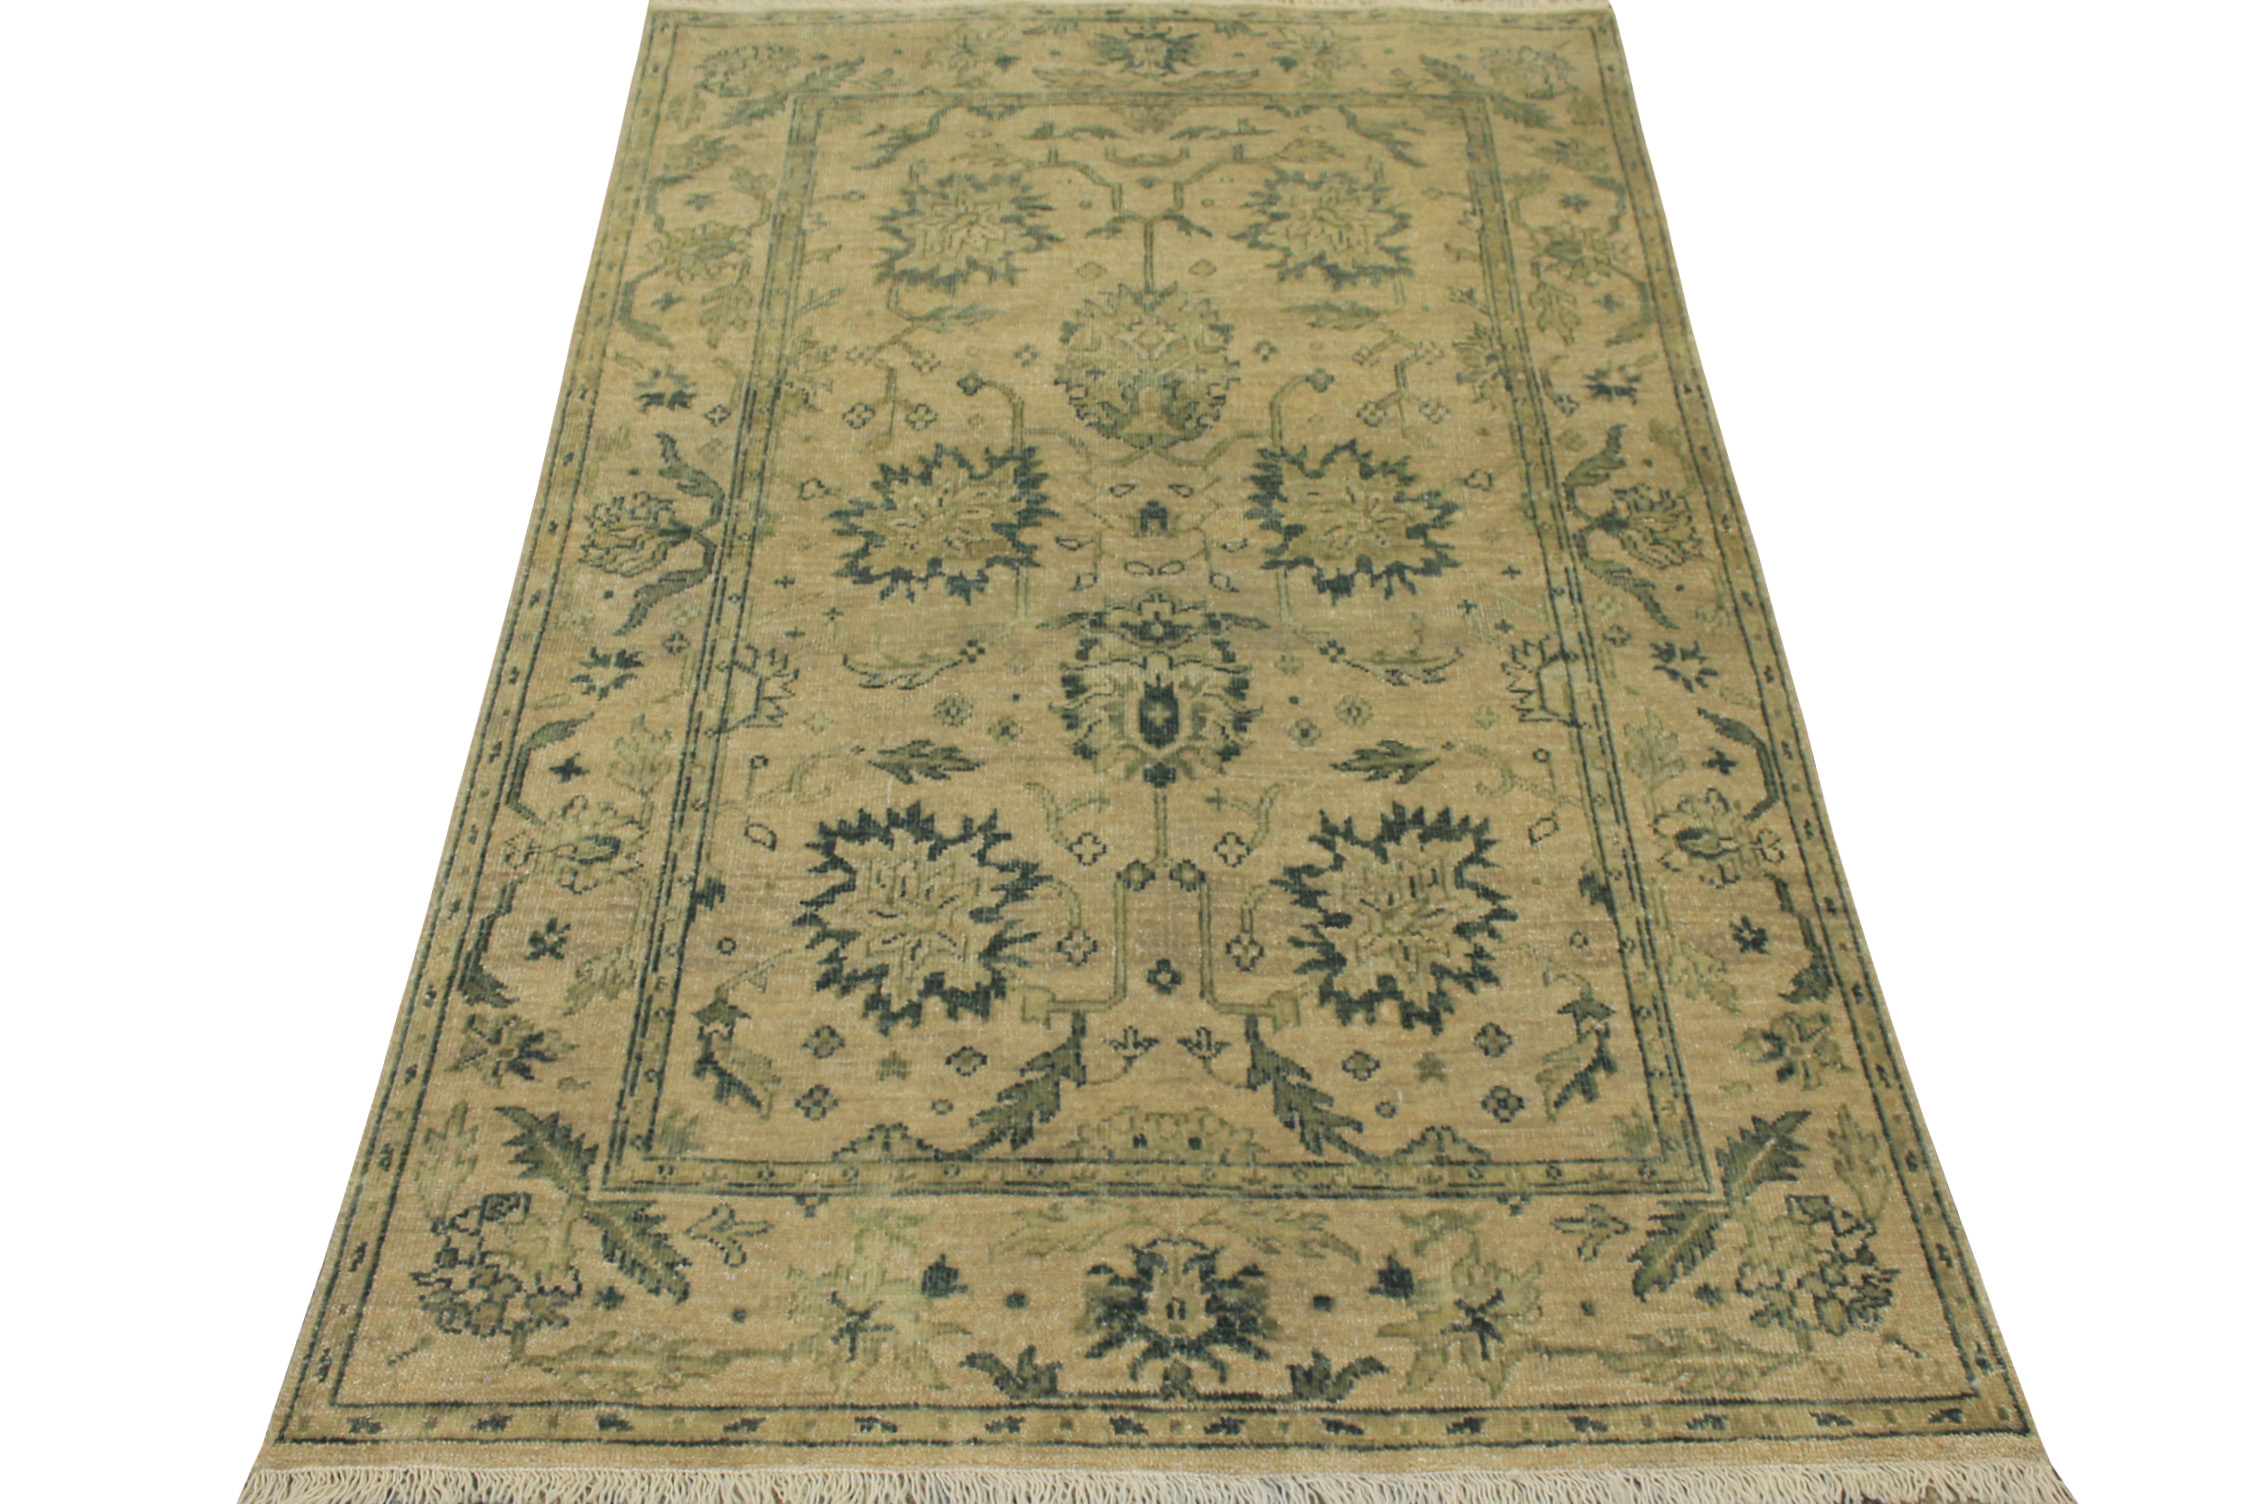 4x6 Oushak Hand Knotted Wool Area Rug - MR17015